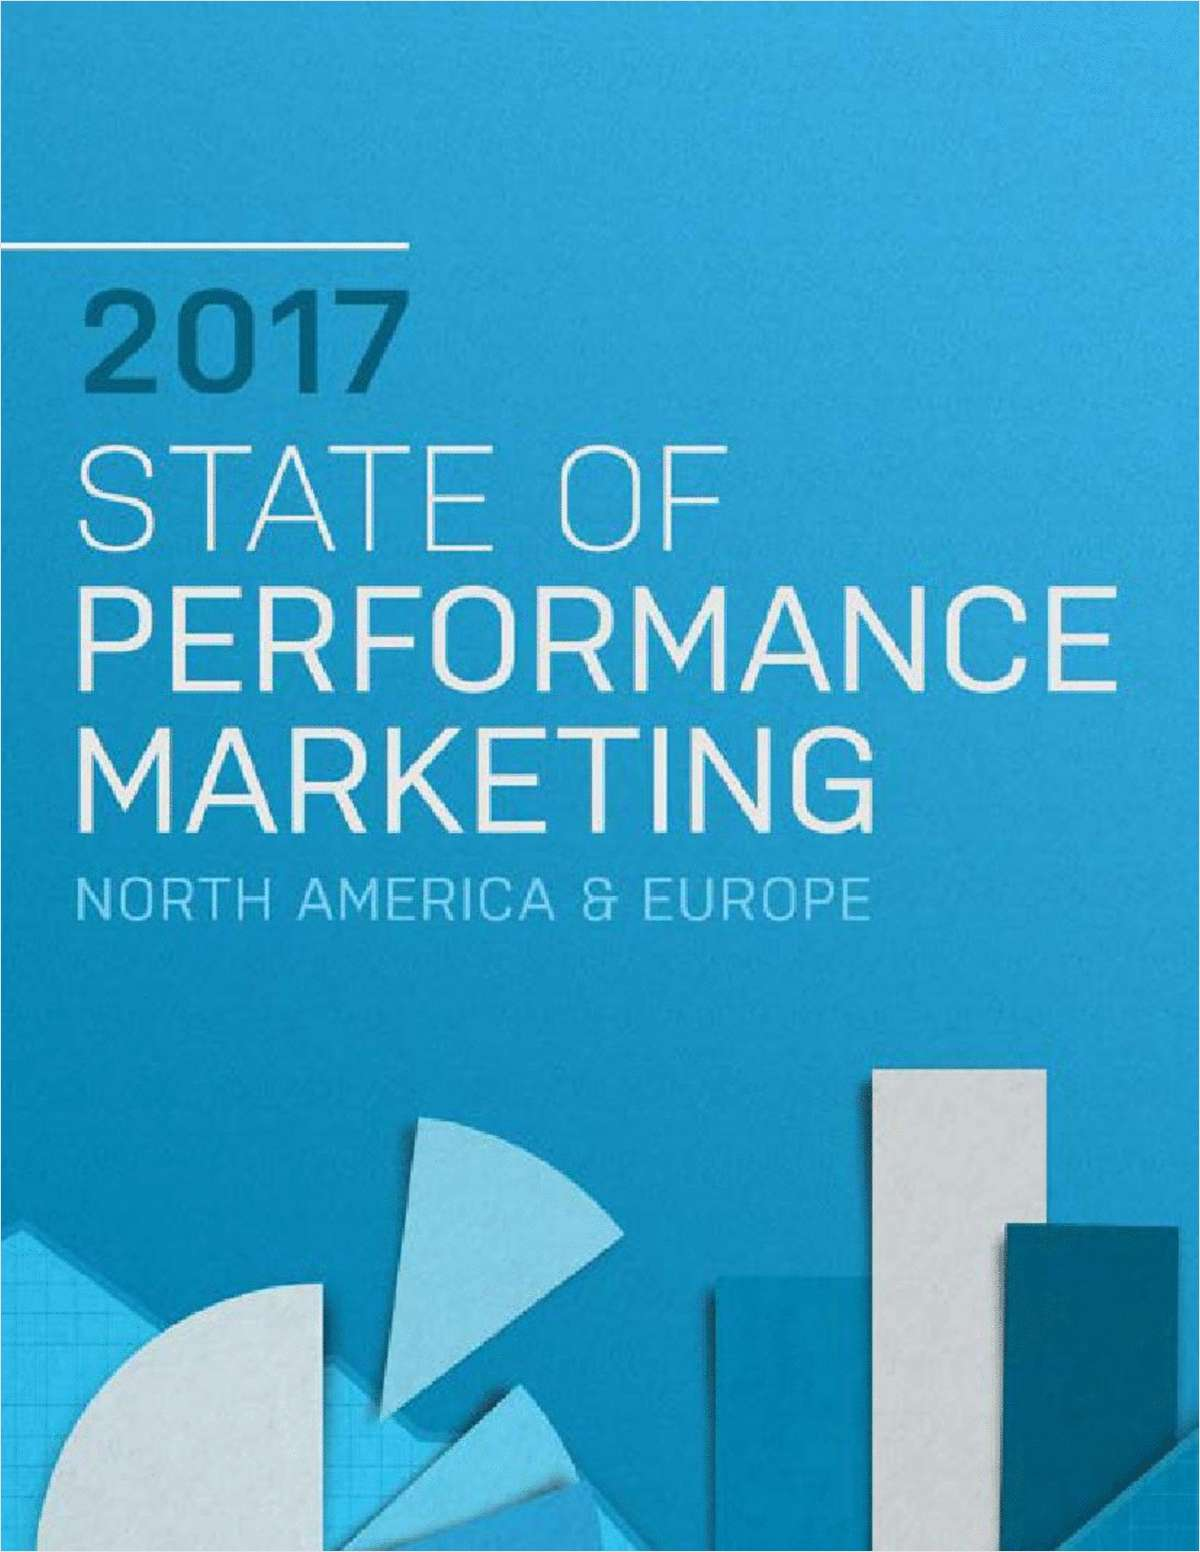 AdRoll's 2017 State of Performance Marketing